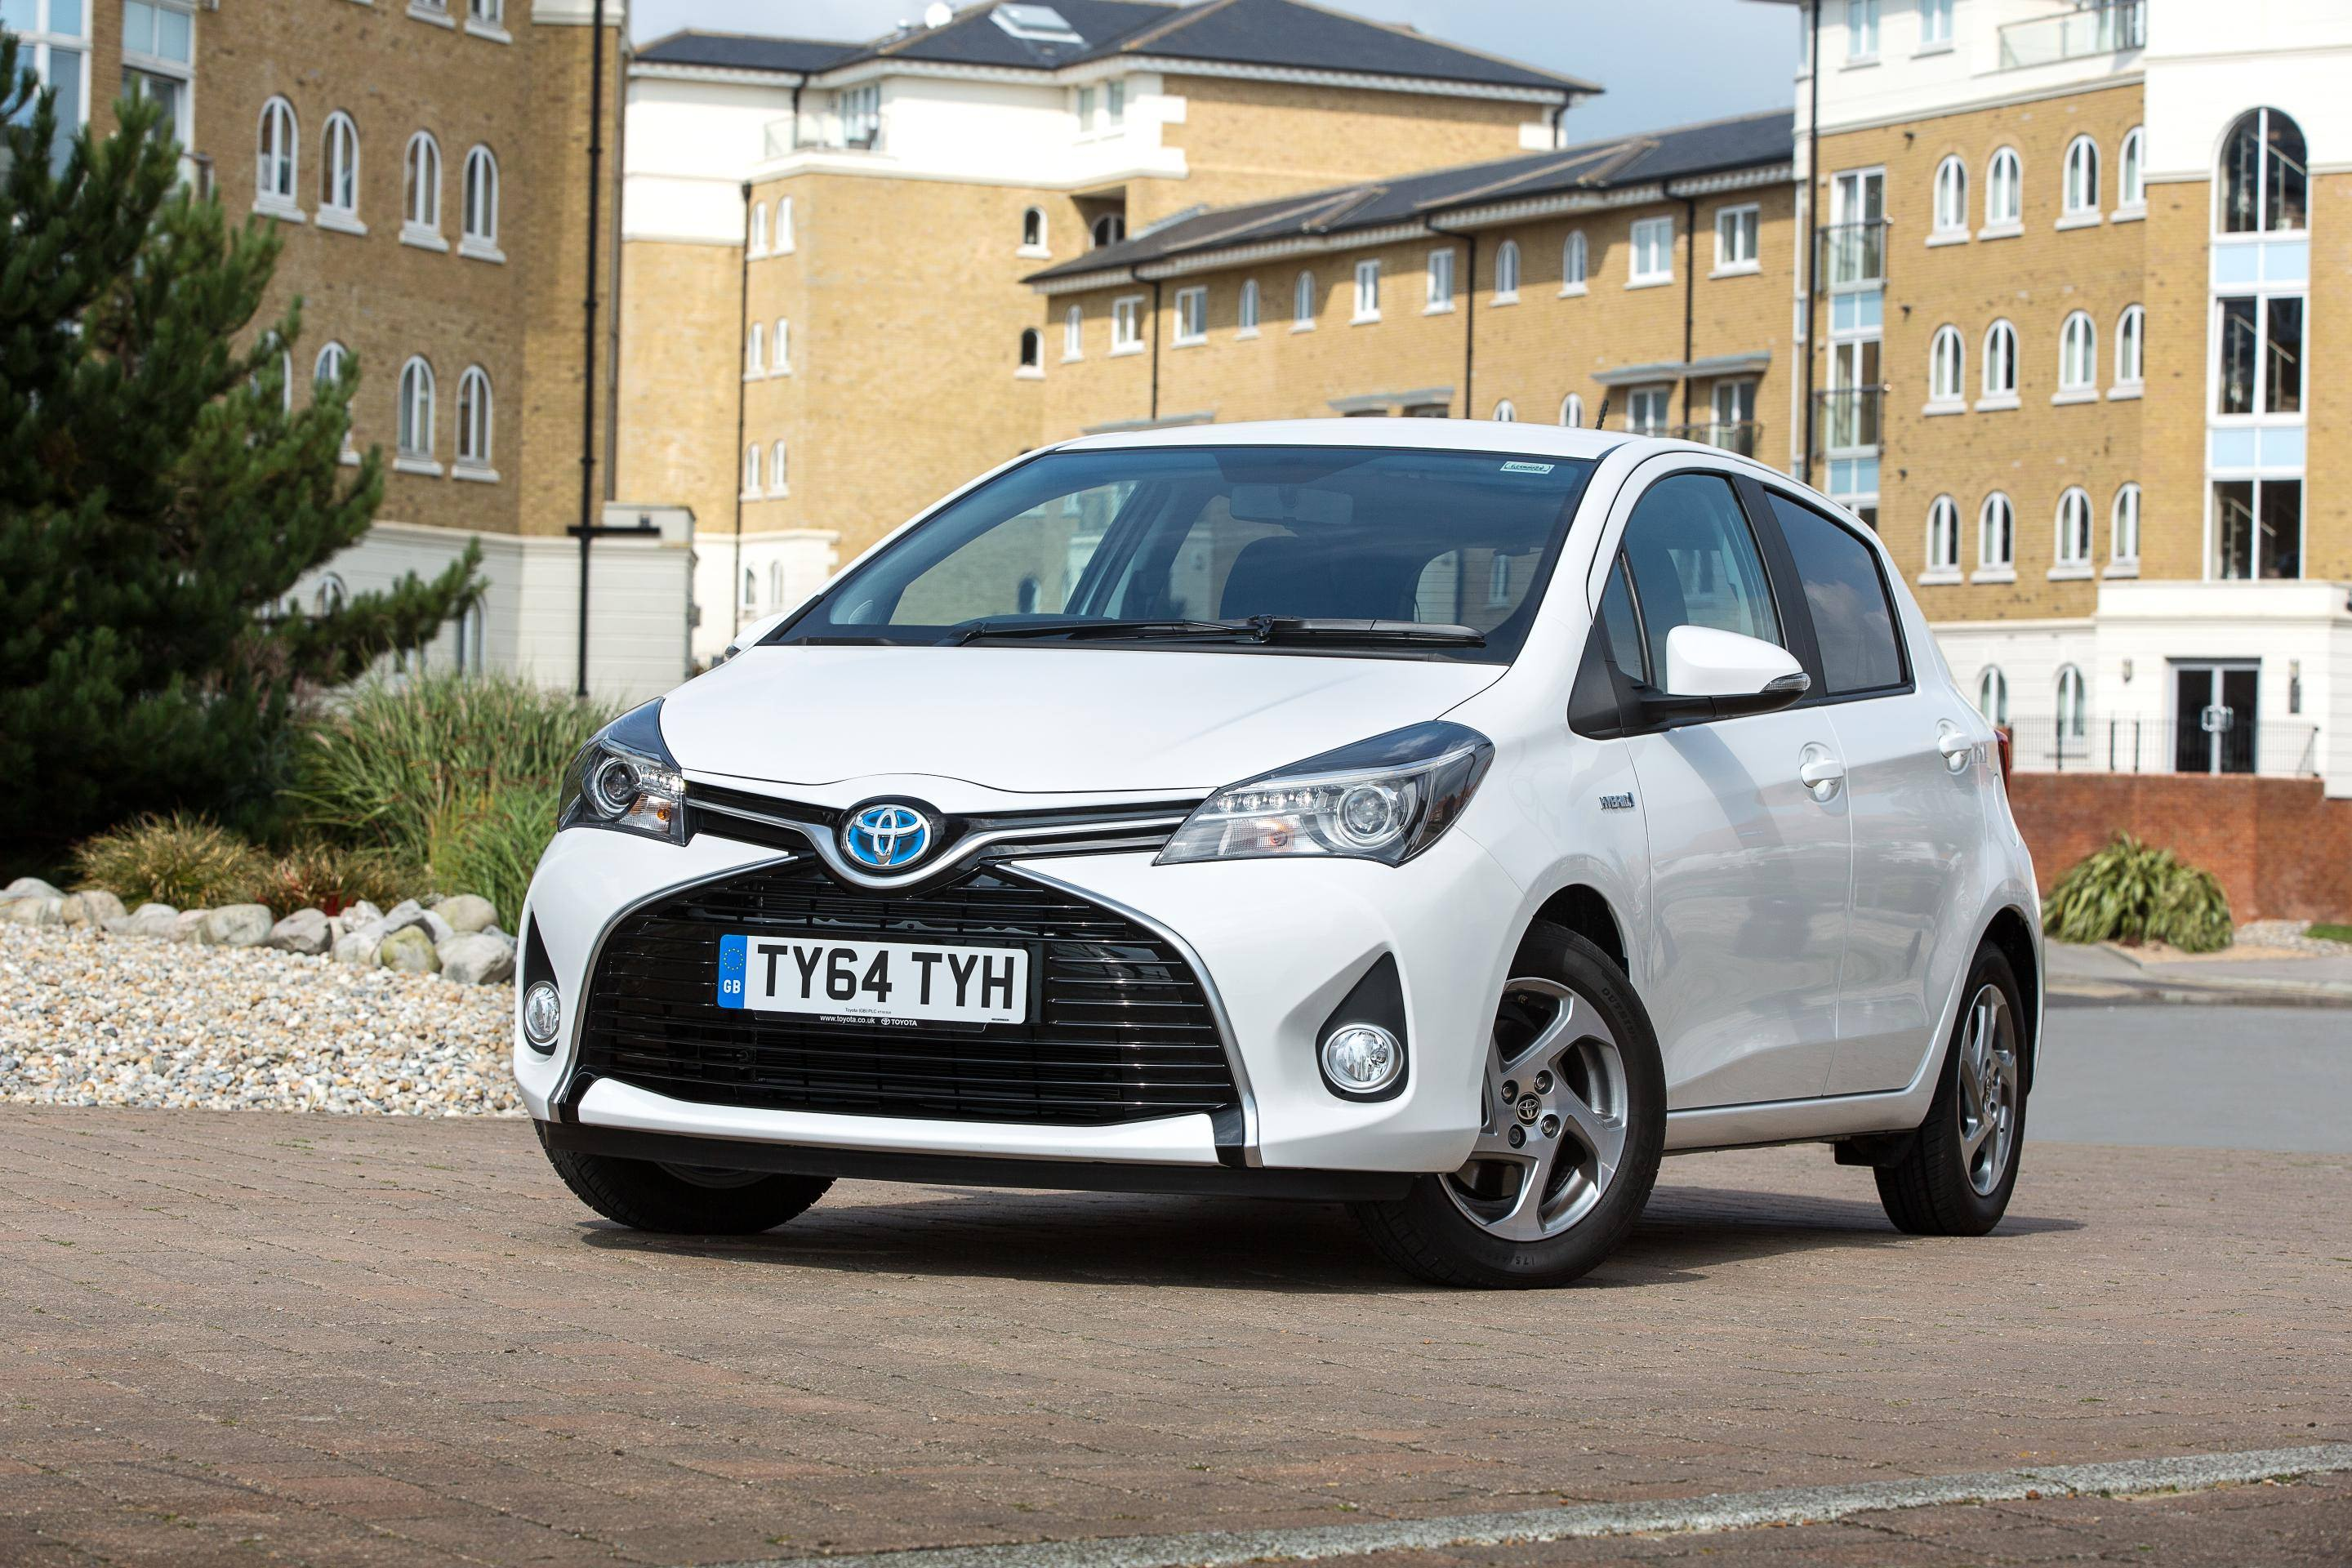 image of a white toyota yaris hybrid car exterior